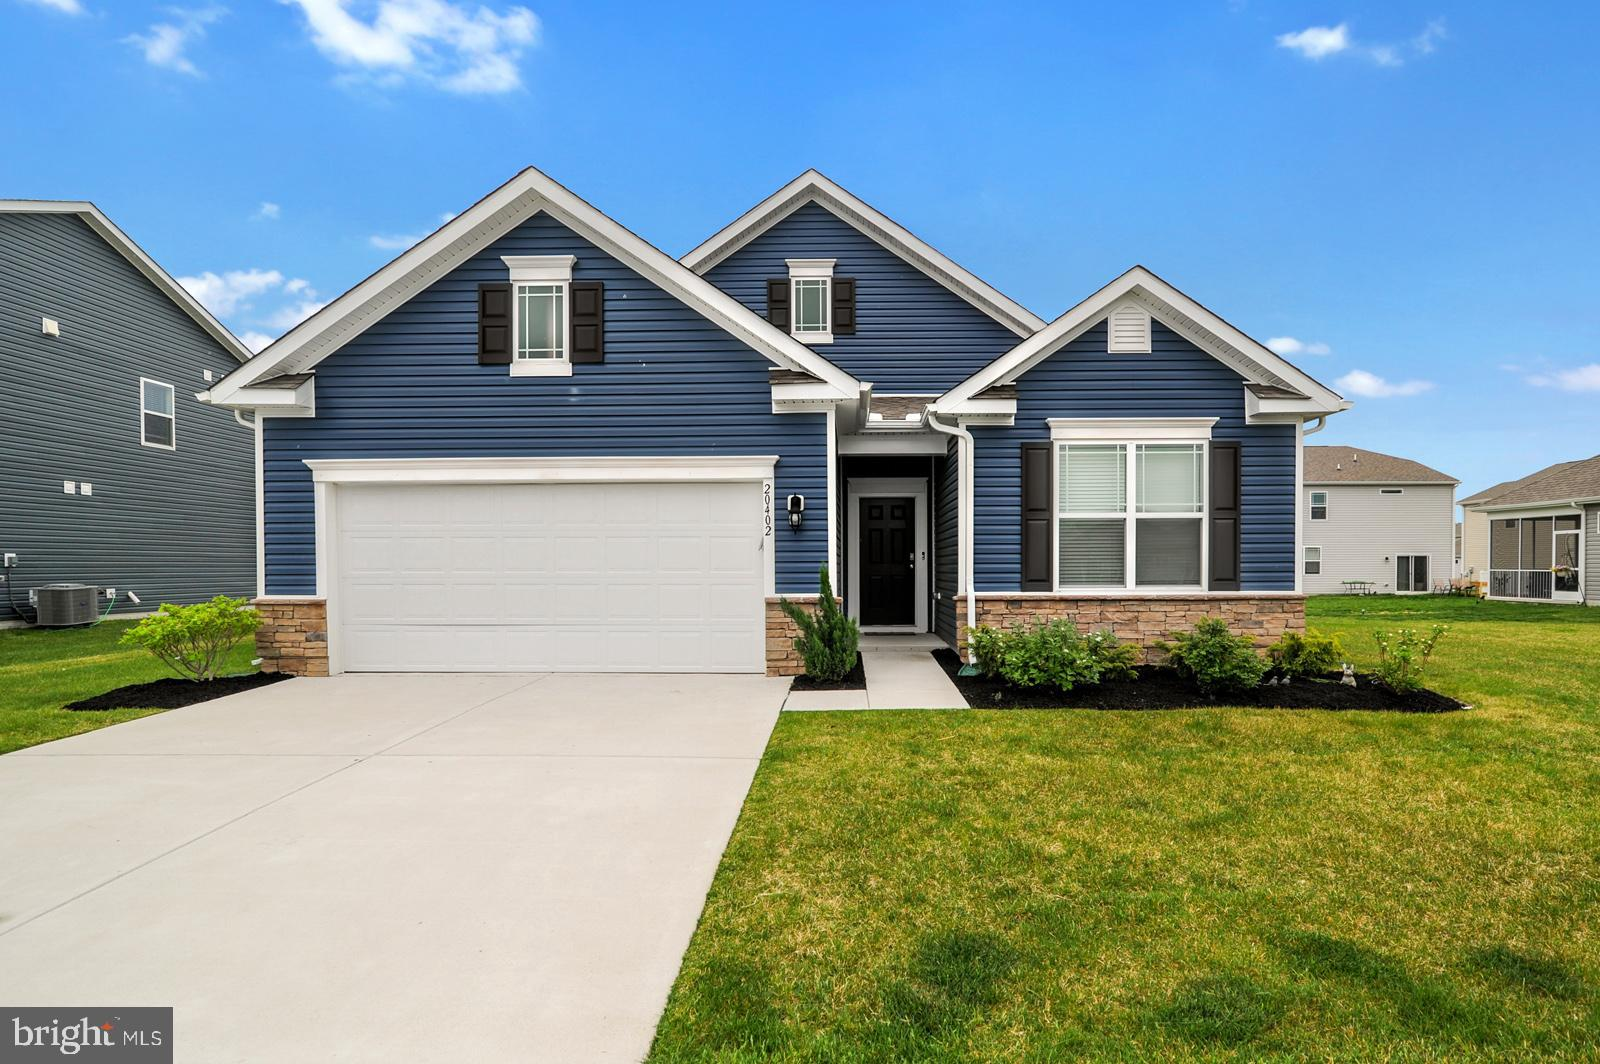 Welcome to 20402 Unionfield Ln in highly desirable West Shores community! Newly built in 2019, this